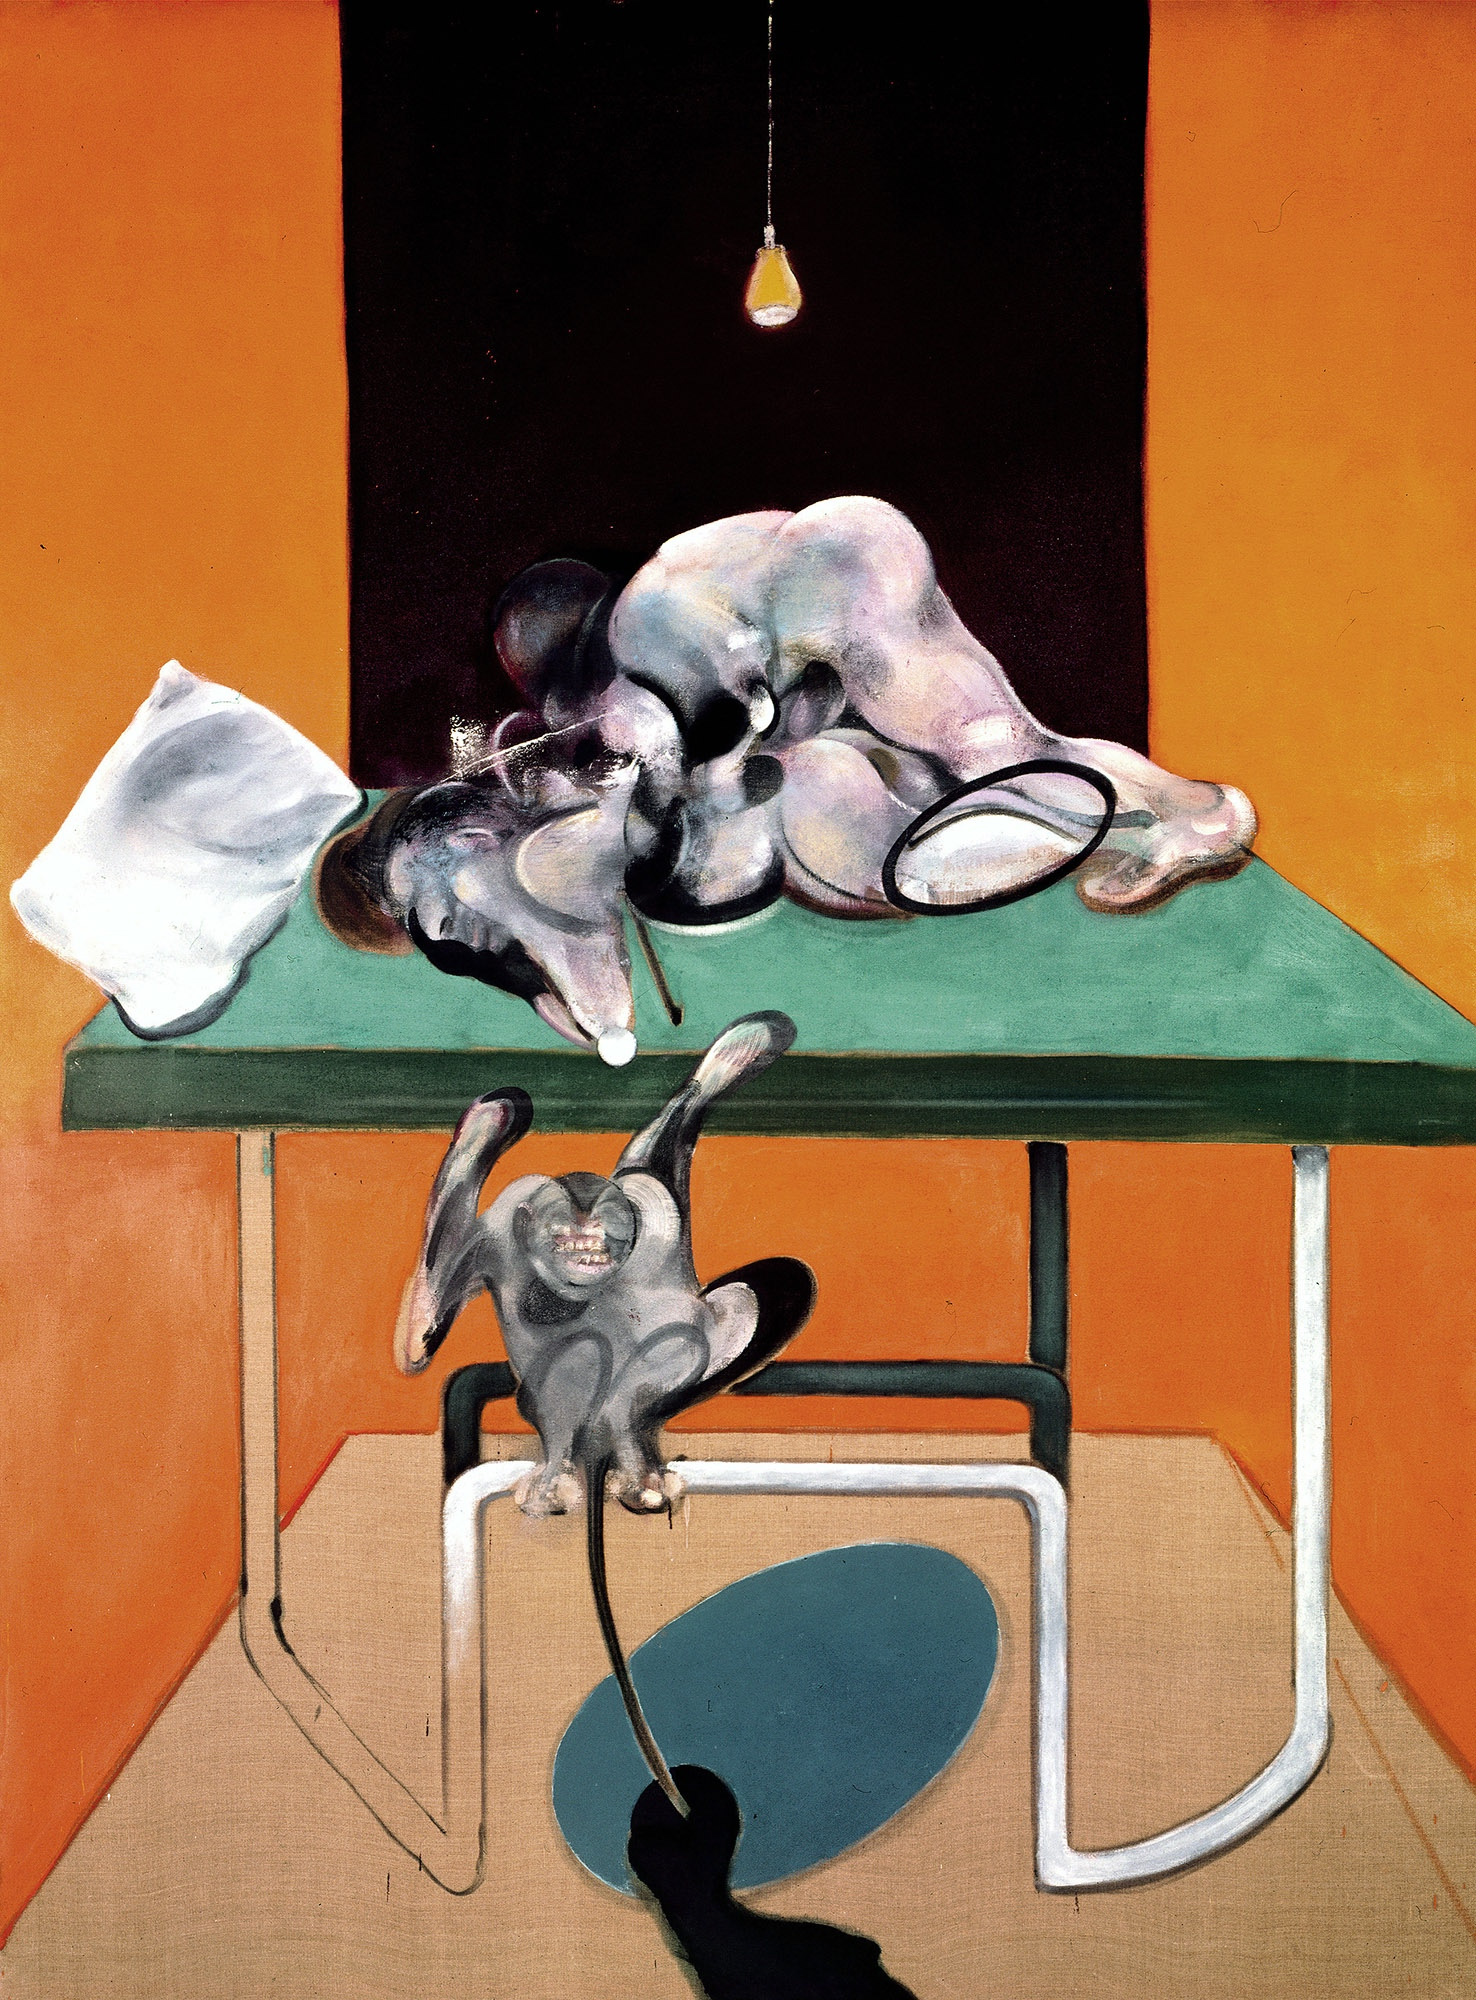 Francis Bacon.  Two Figures with a Monkey, 1973. 78 x 58 1/8 in. 198 x 147.5 cm. Copyright The Estate of Francis Bacon. All rights reserved. DACS/Artimage 2019. Photo: Prudence Cuming Associates Ltd. Courtesy Gagosian